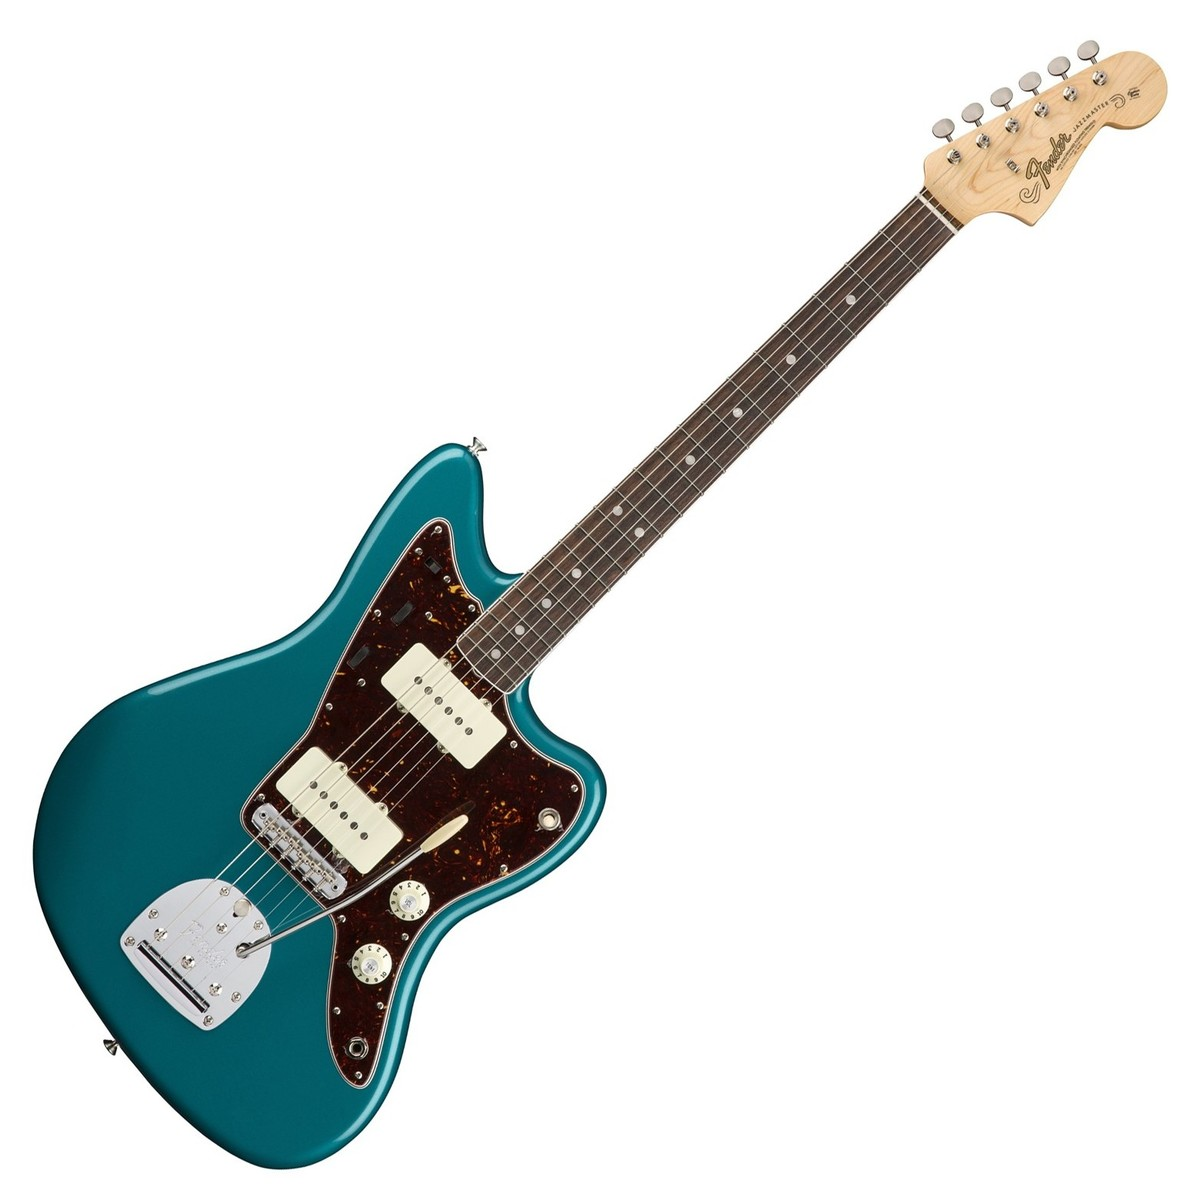 fender american original 39 60s jazzmaster rw ocean turquoise at gear4music. Black Bedroom Furniture Sets. Home Design Ideas